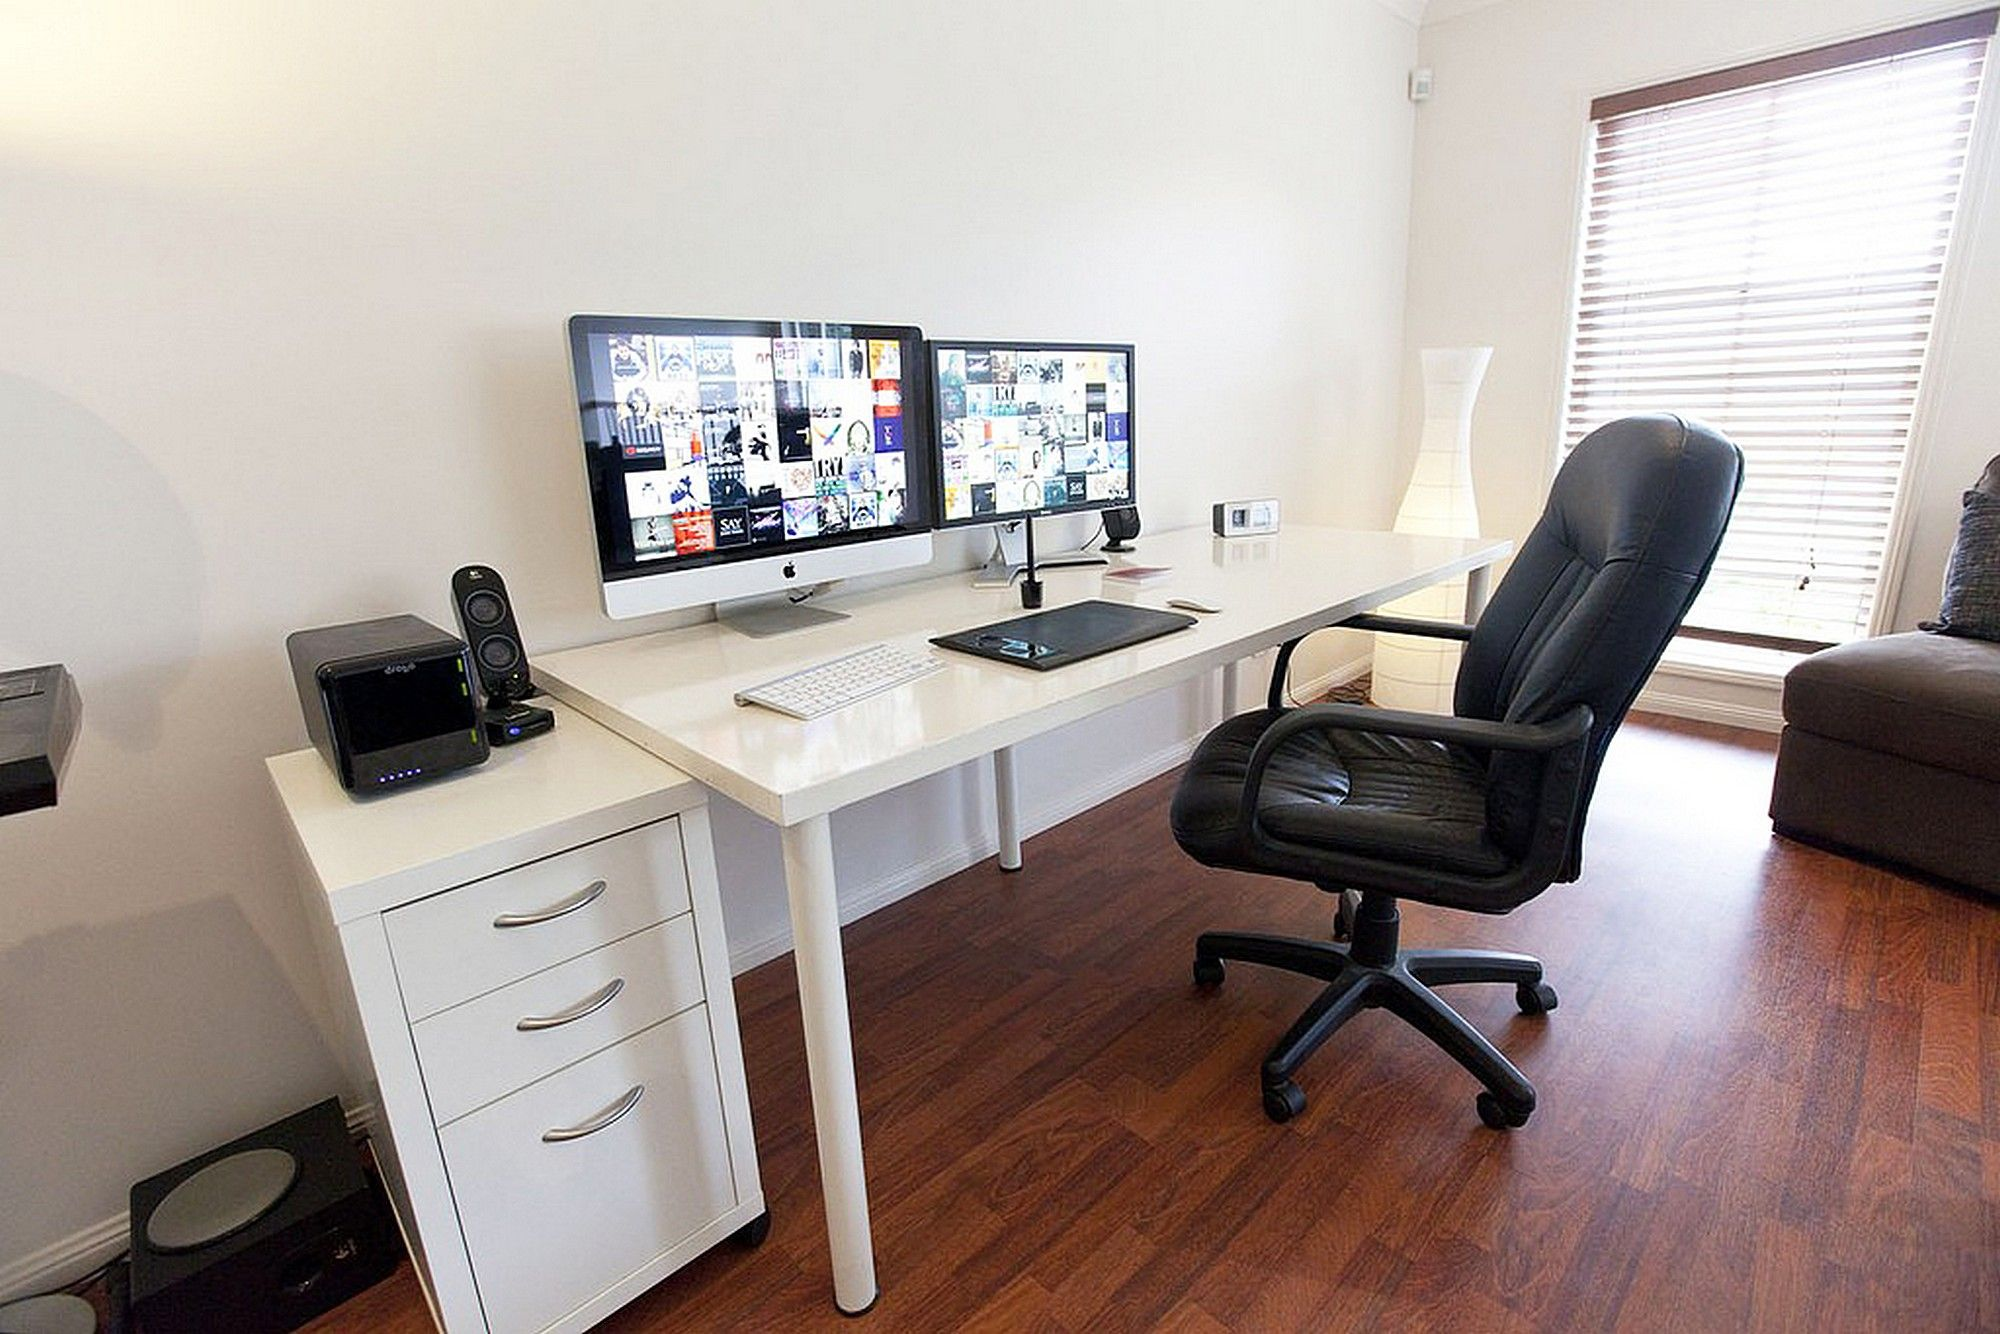 Home Office Desk Setup Ikea Linnmon Adils Computer Desk Setup With Drawer For